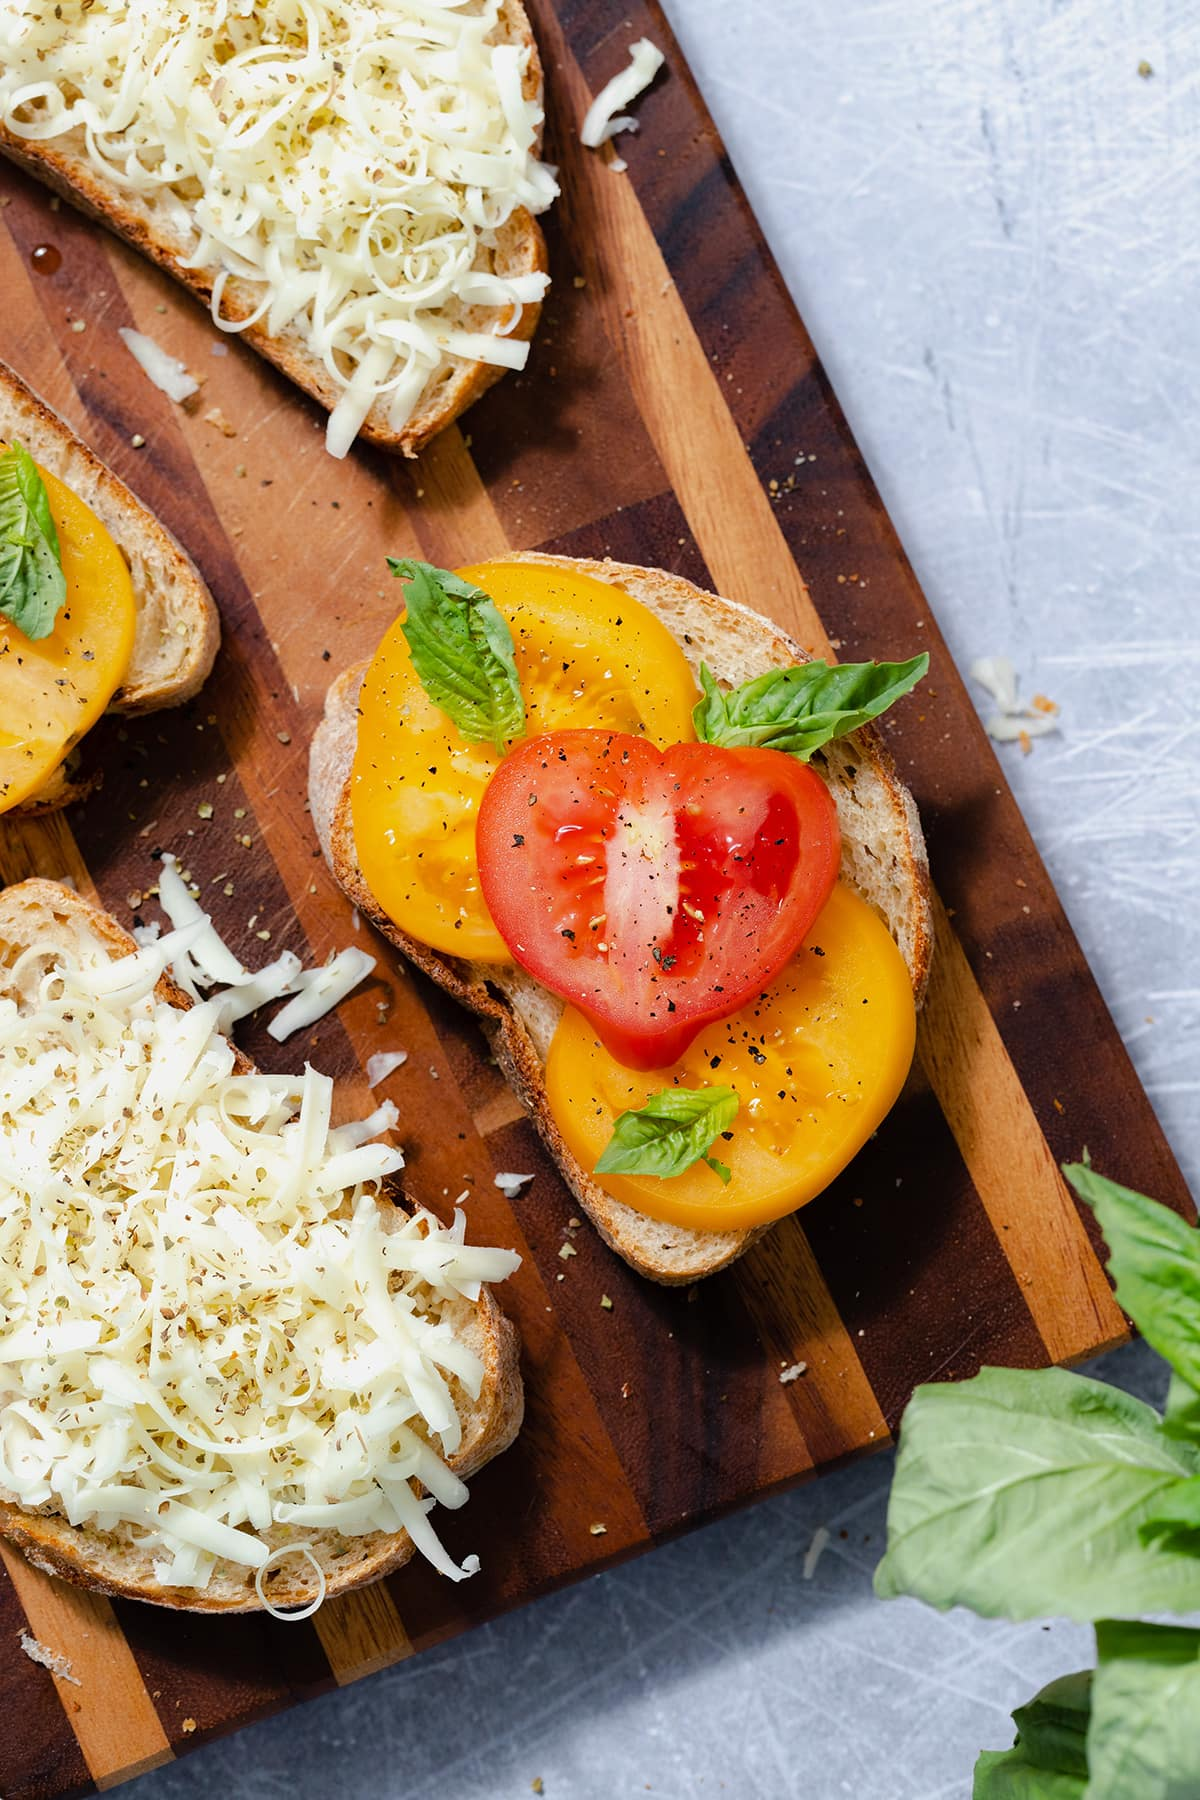 Four slices of bread on a cutting board. The main slice in focus in the middle, layered with sliced heirloom tomatoes and fresh basil. The slice on the bottom left layered with shredded cheese.